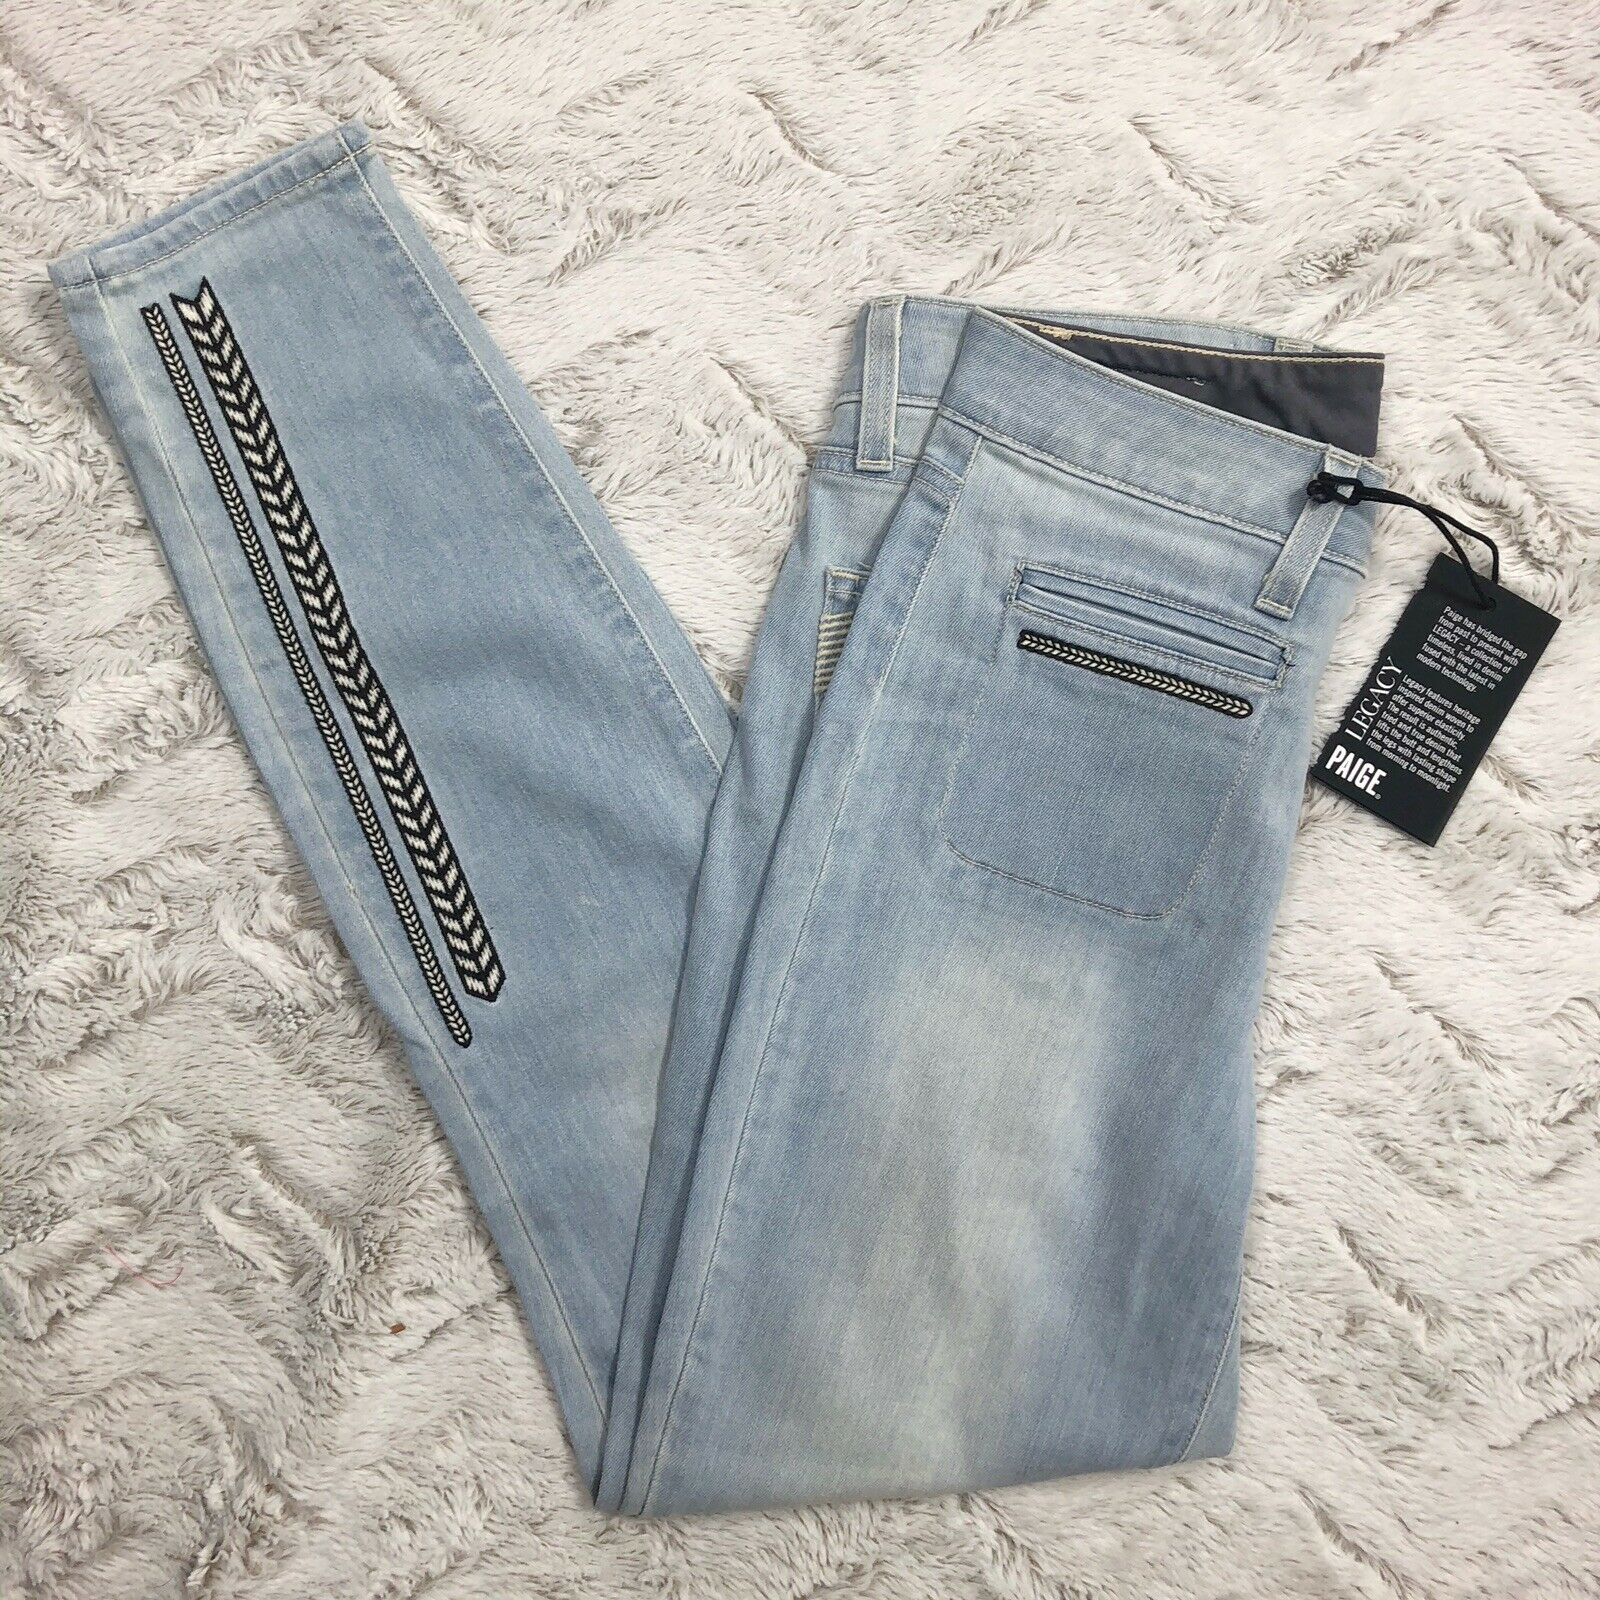 Paige Womens Jeans Size 27 Vintage Hoxton Ankle Baylee Embroidered New Nwt